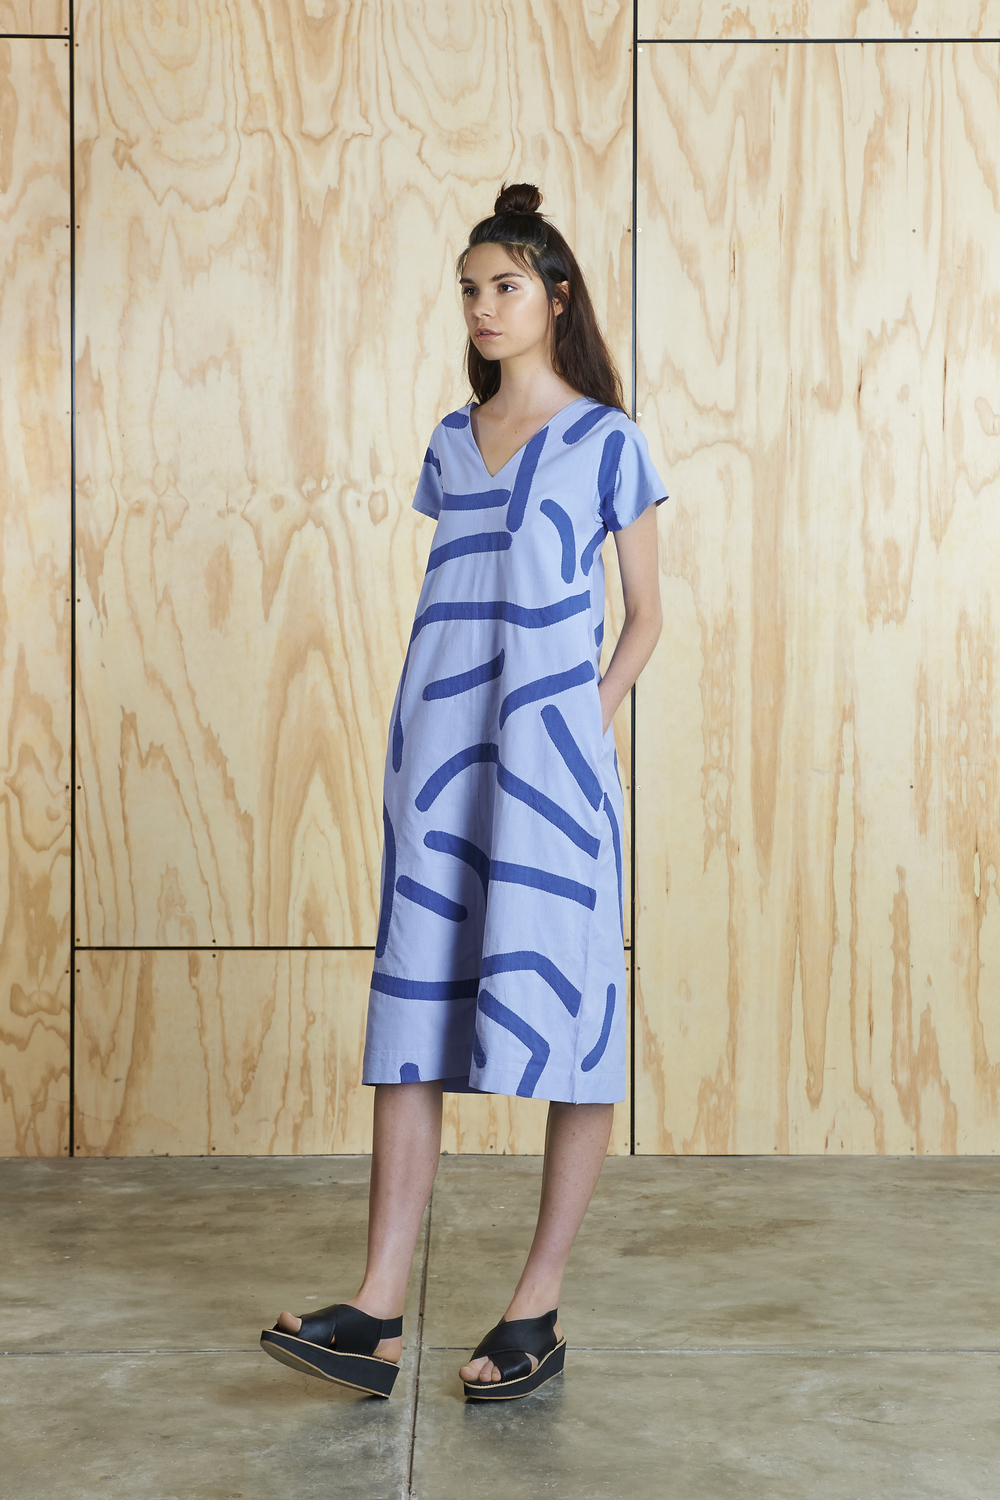 Big Creases Dress in Light Violet/Blue  AUD $310